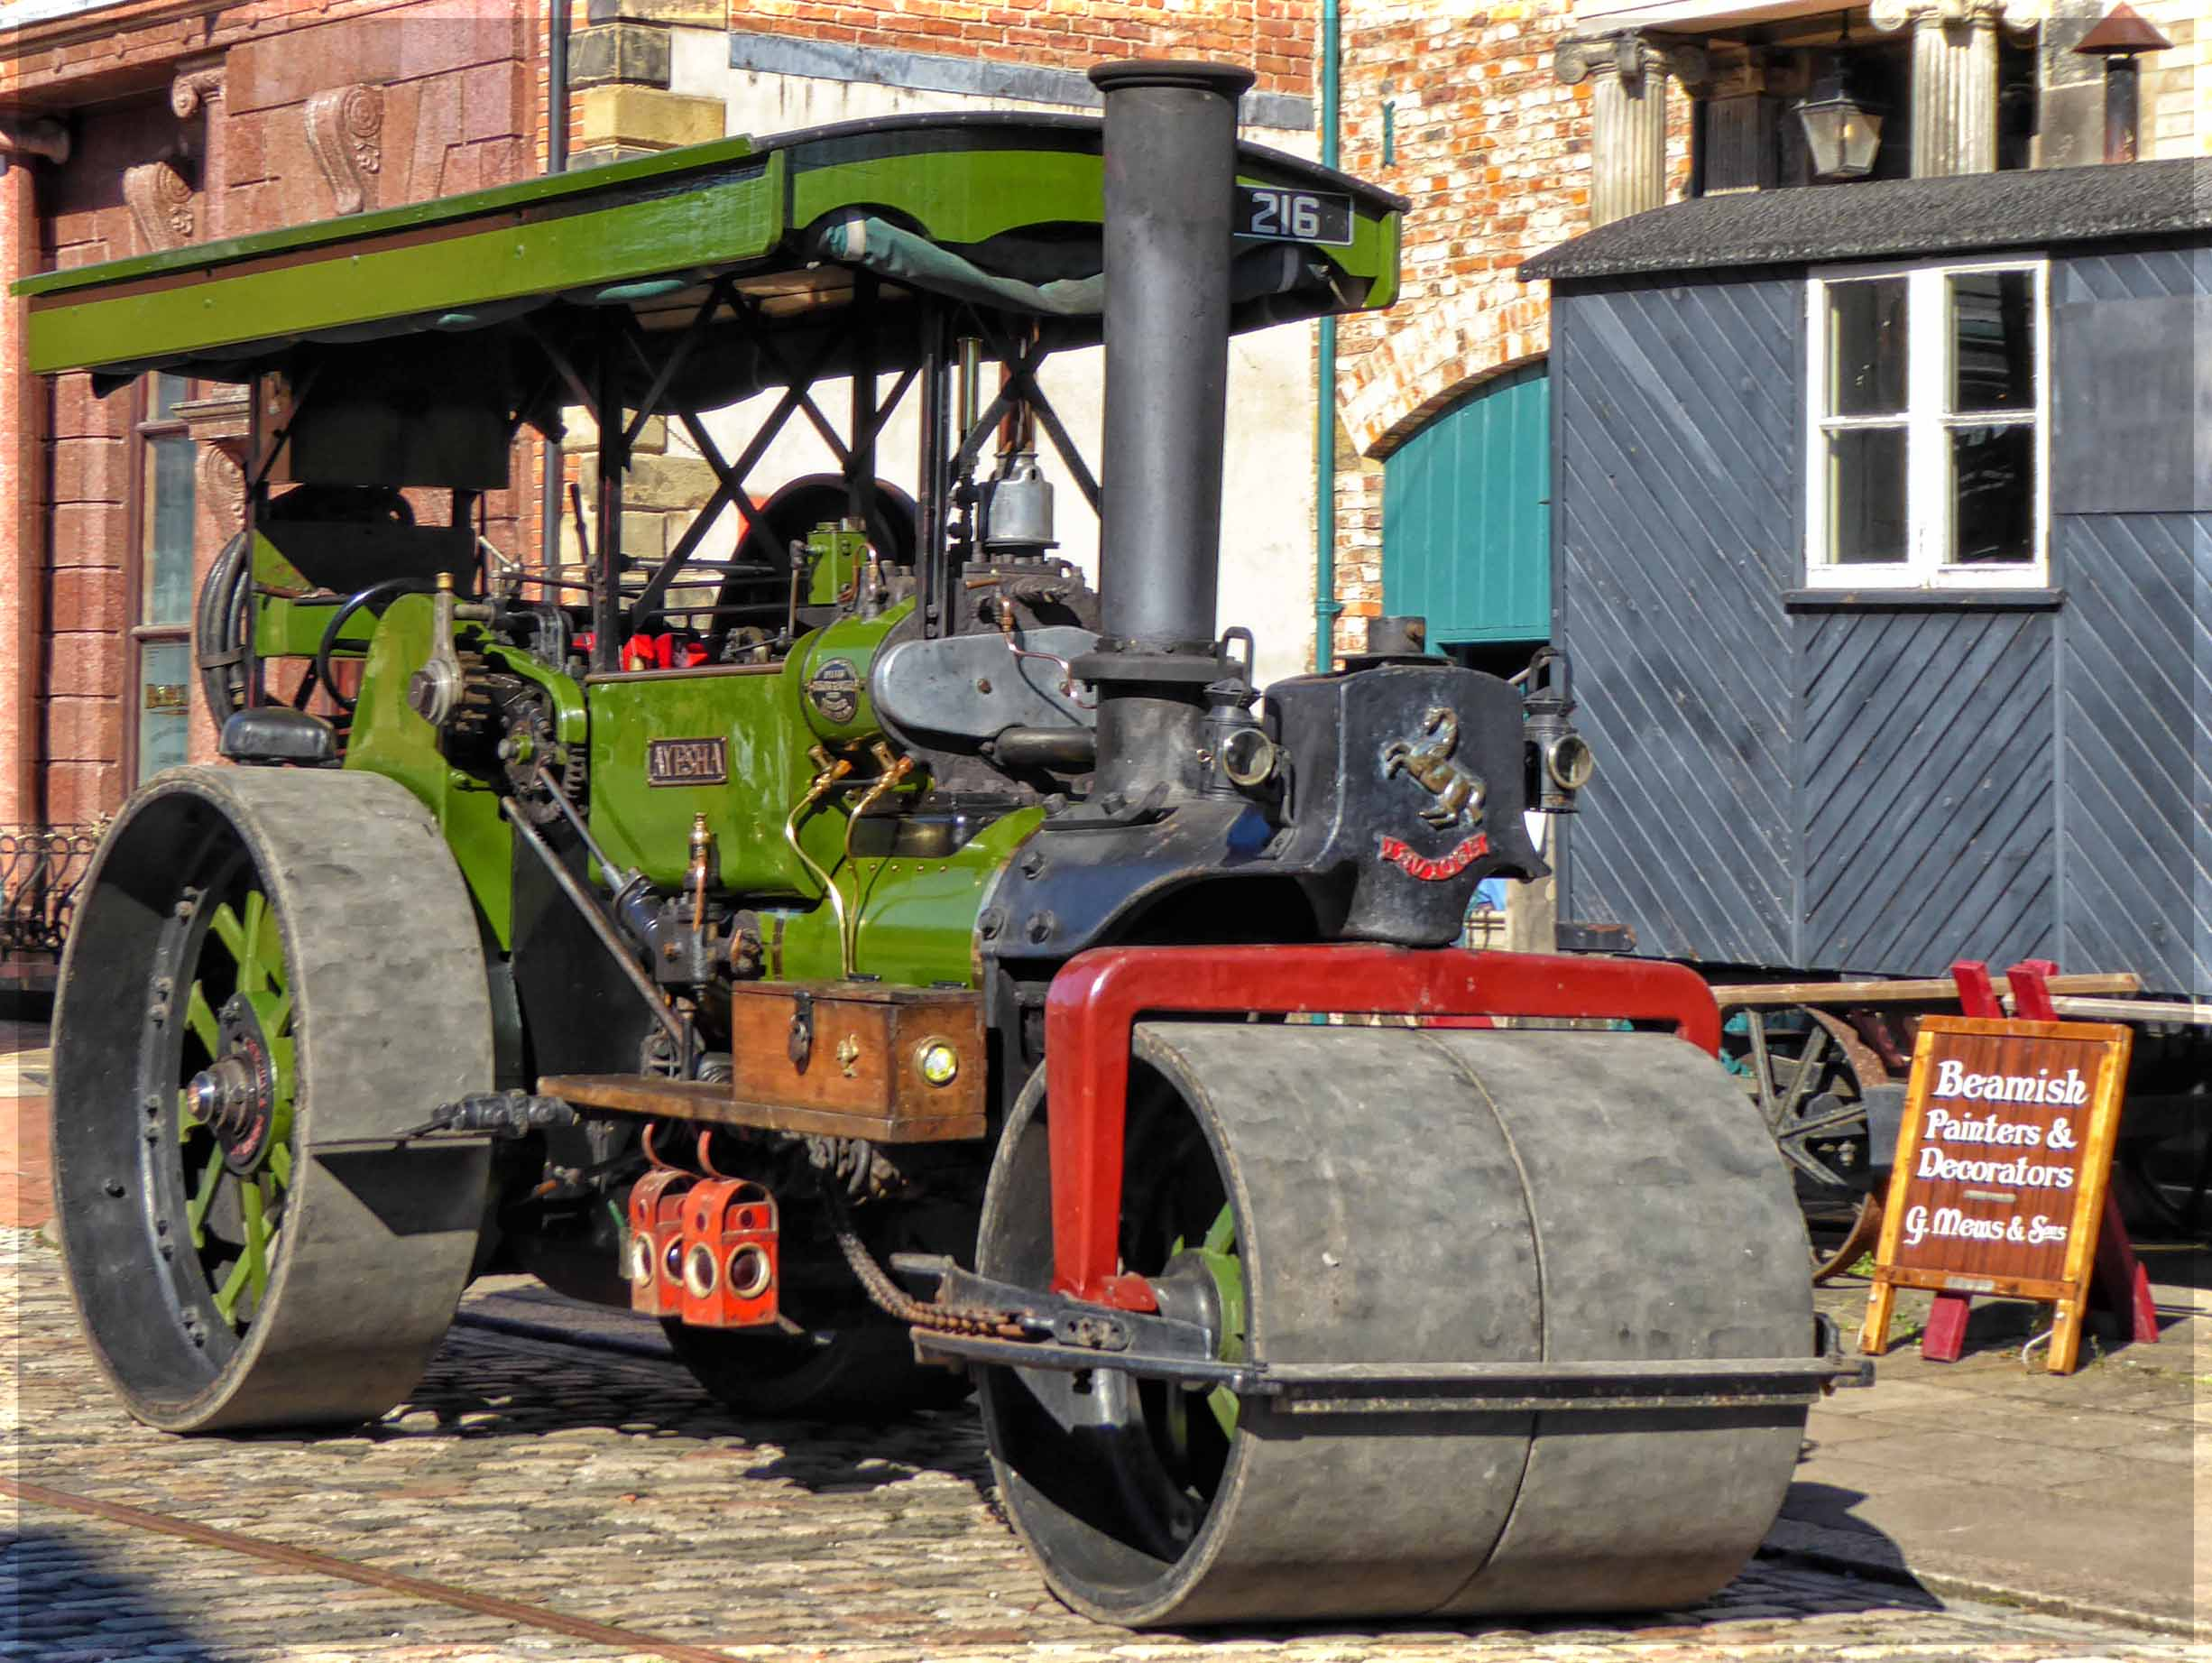 Old-fashioned green painted steam roller